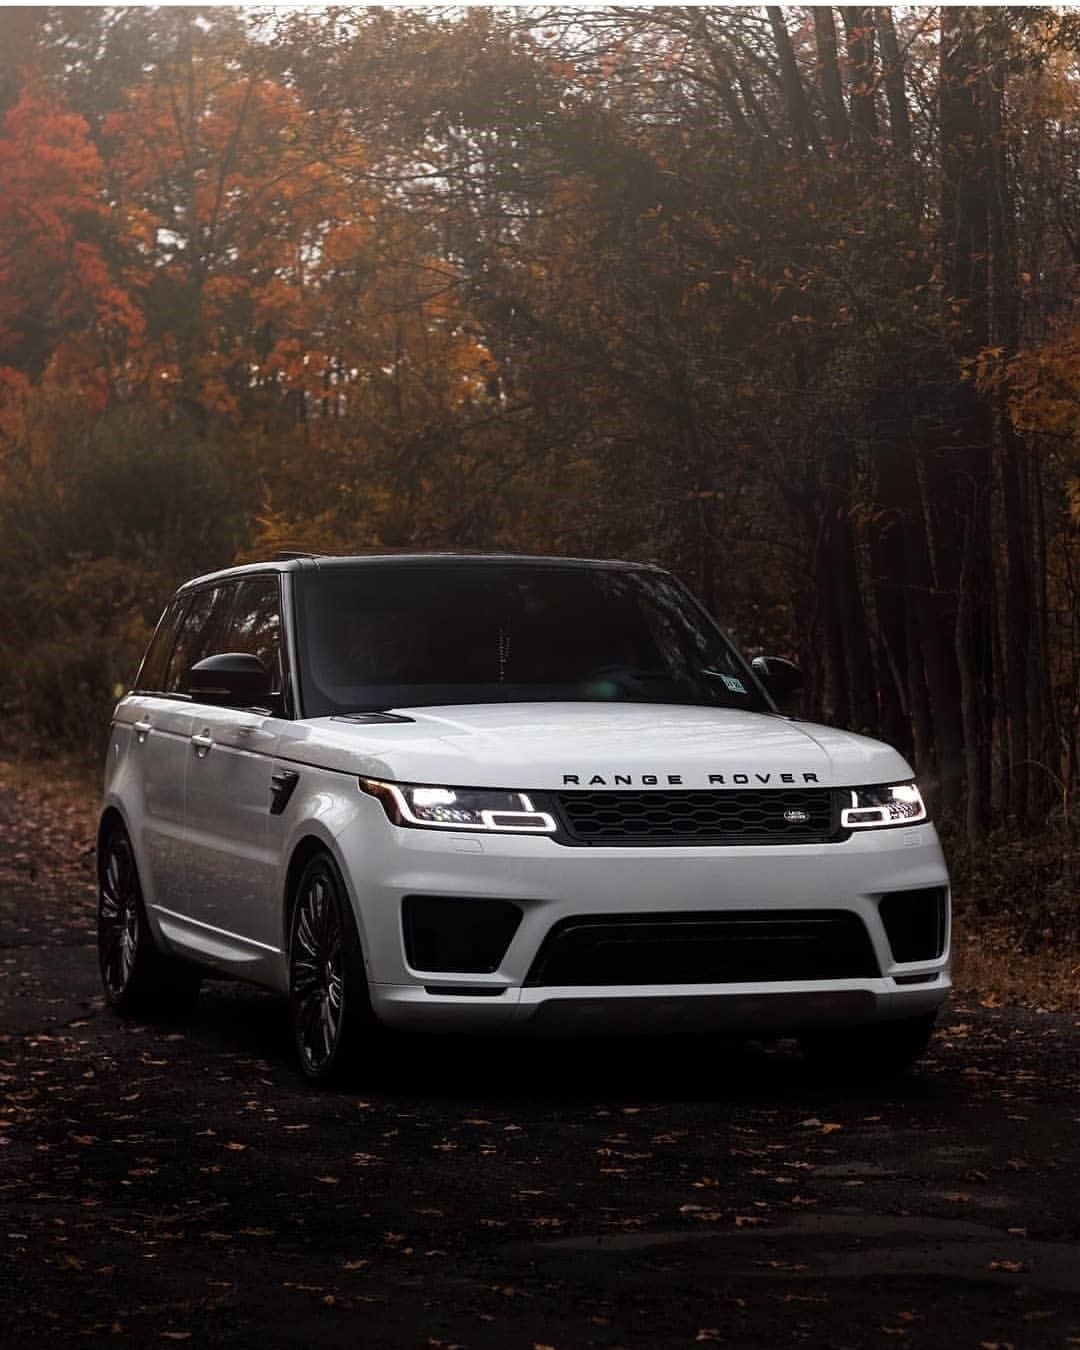 Range Rover Luxury Cars Range Rover Range Rover Dream Cars Range Rovers